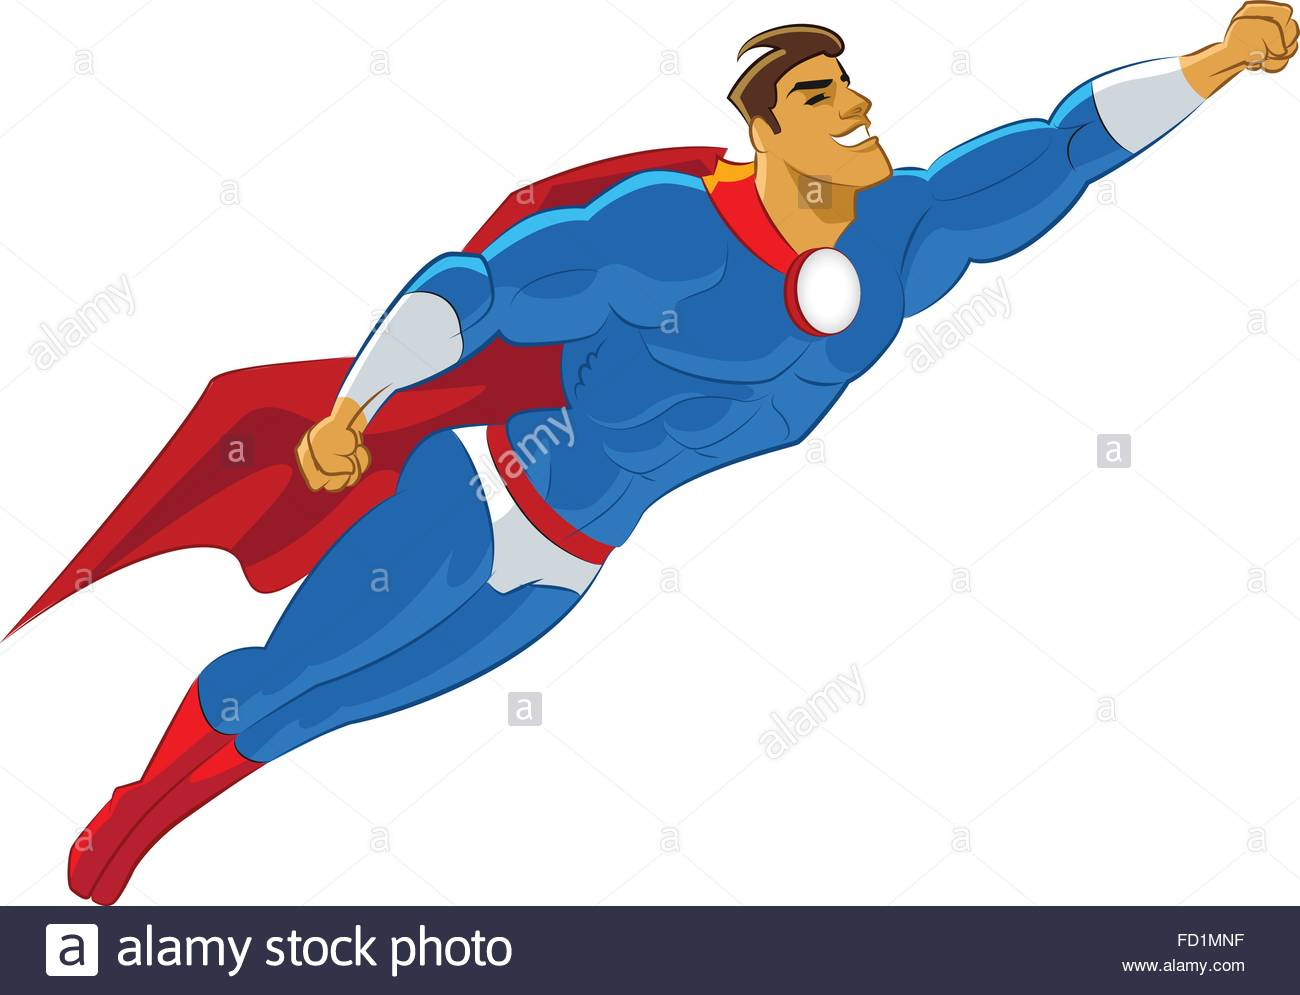 1300x995 Superman Flying Stock Photos Amp Superman Flying Stock Images